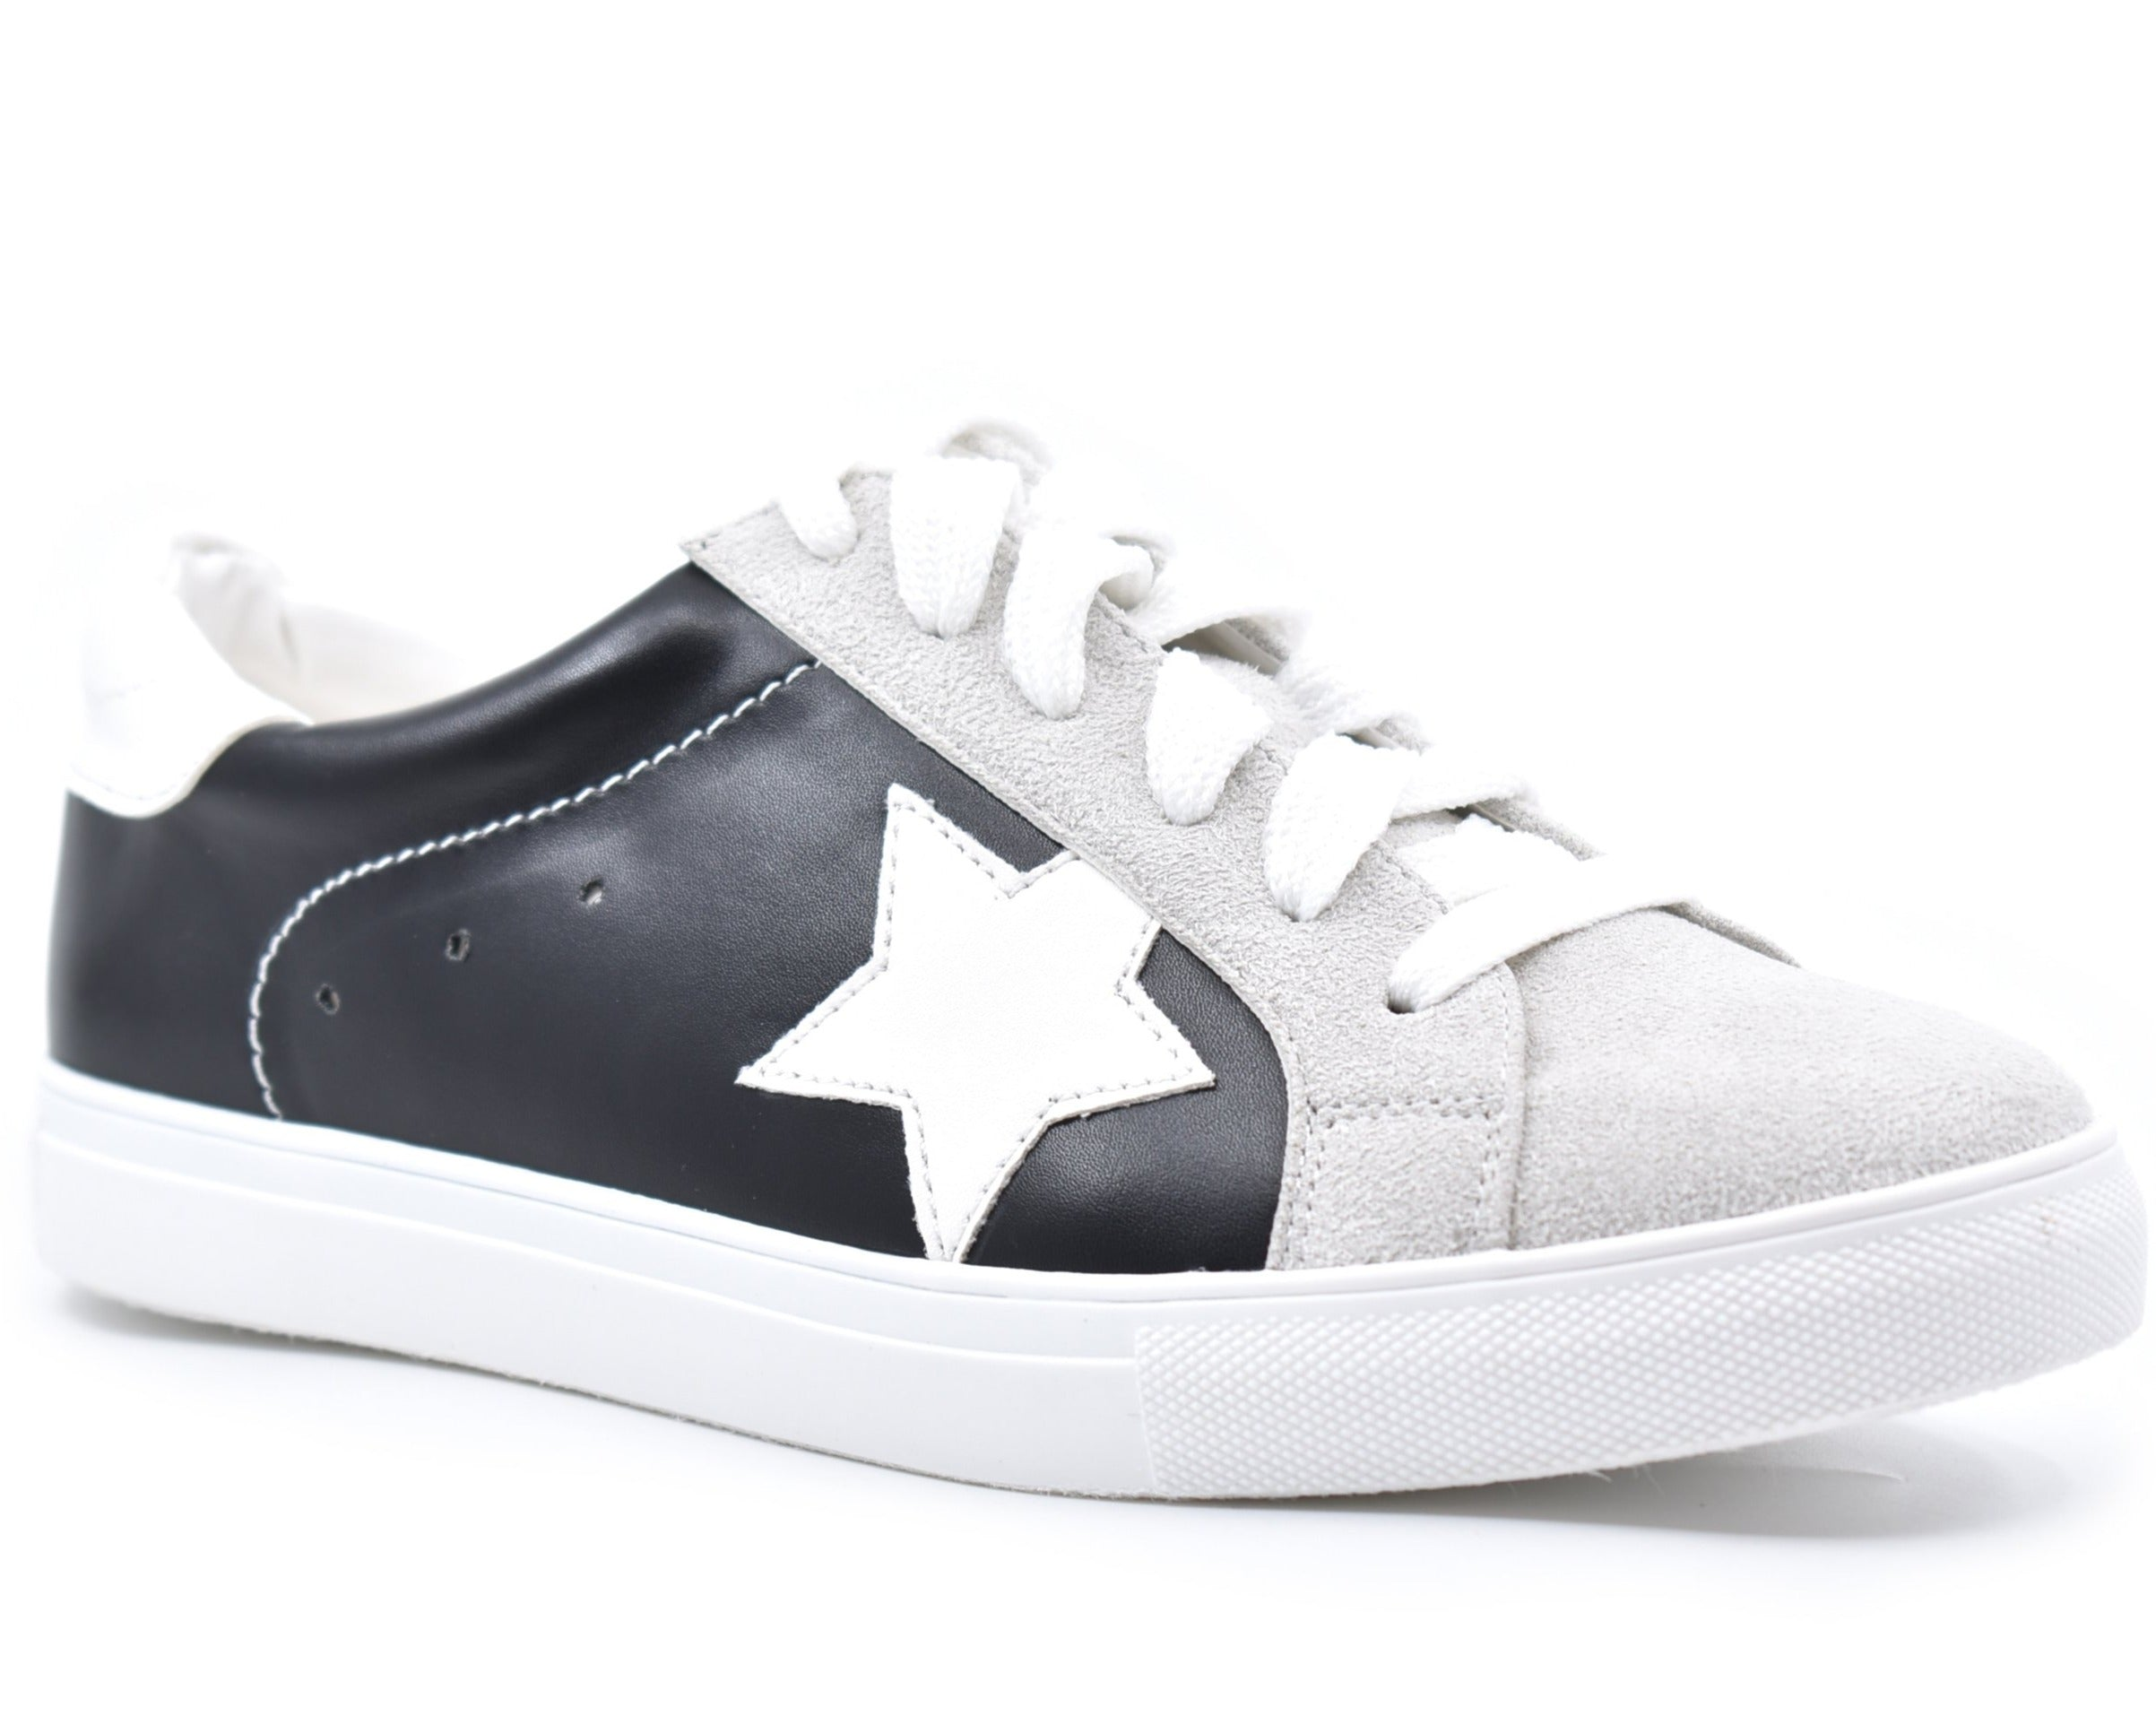 Star-01 Low Top Lace Up Sneakers